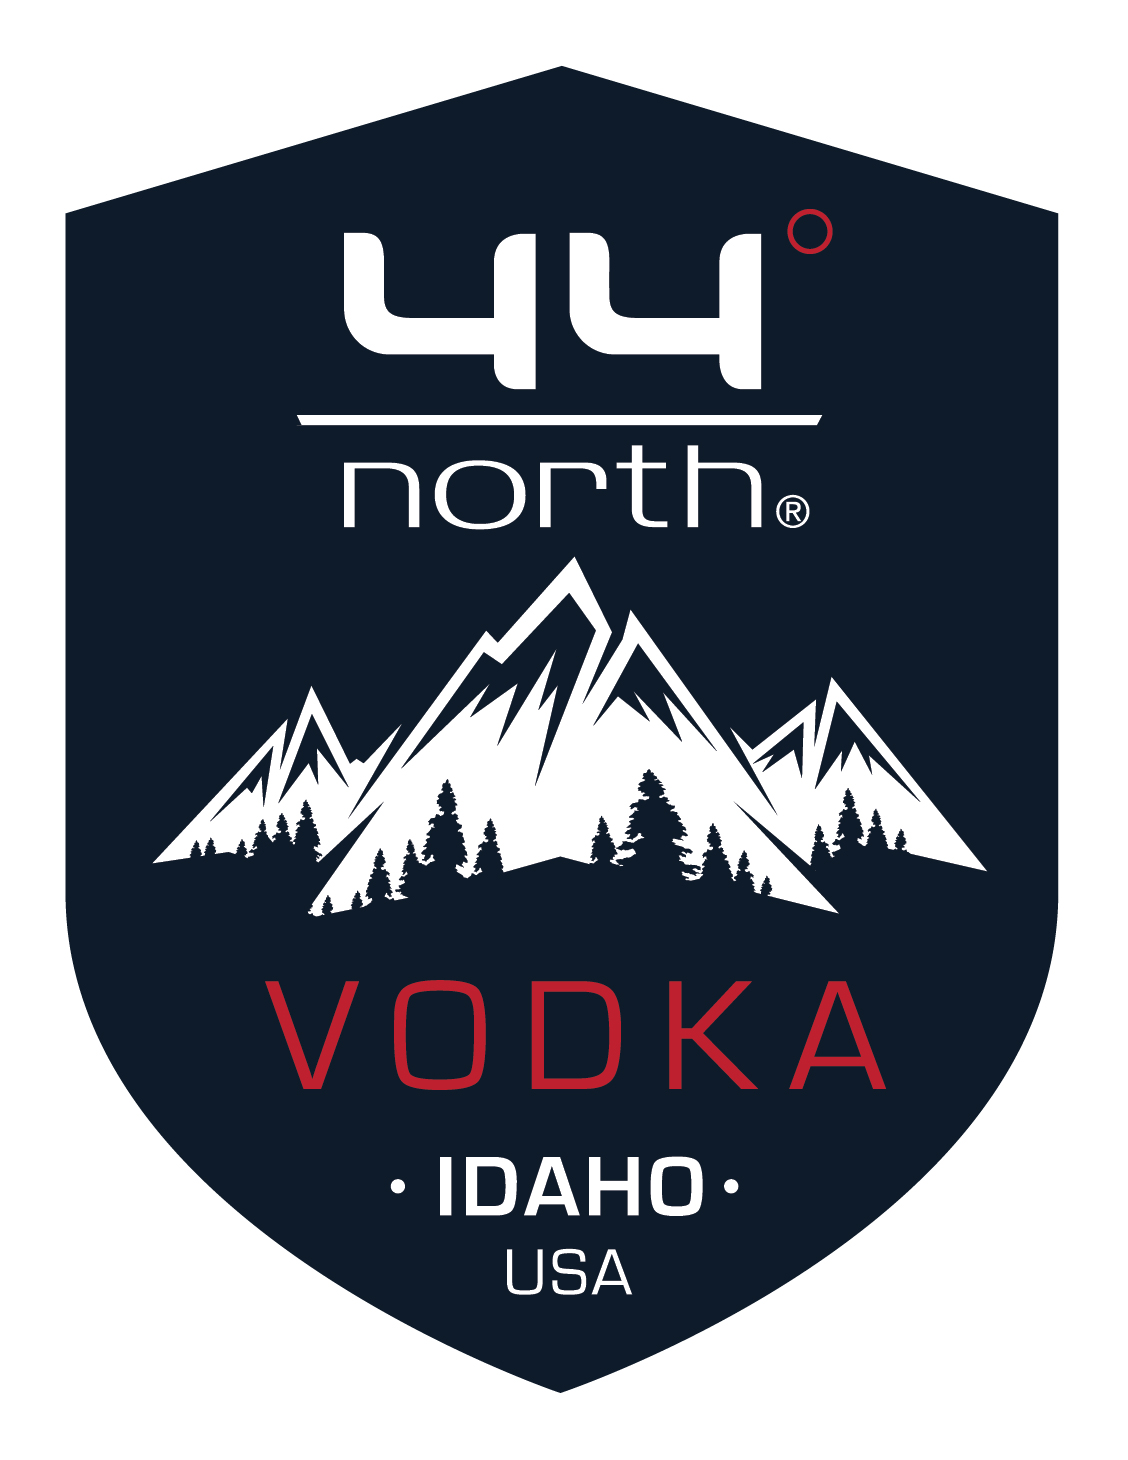 44 North Vodka Company